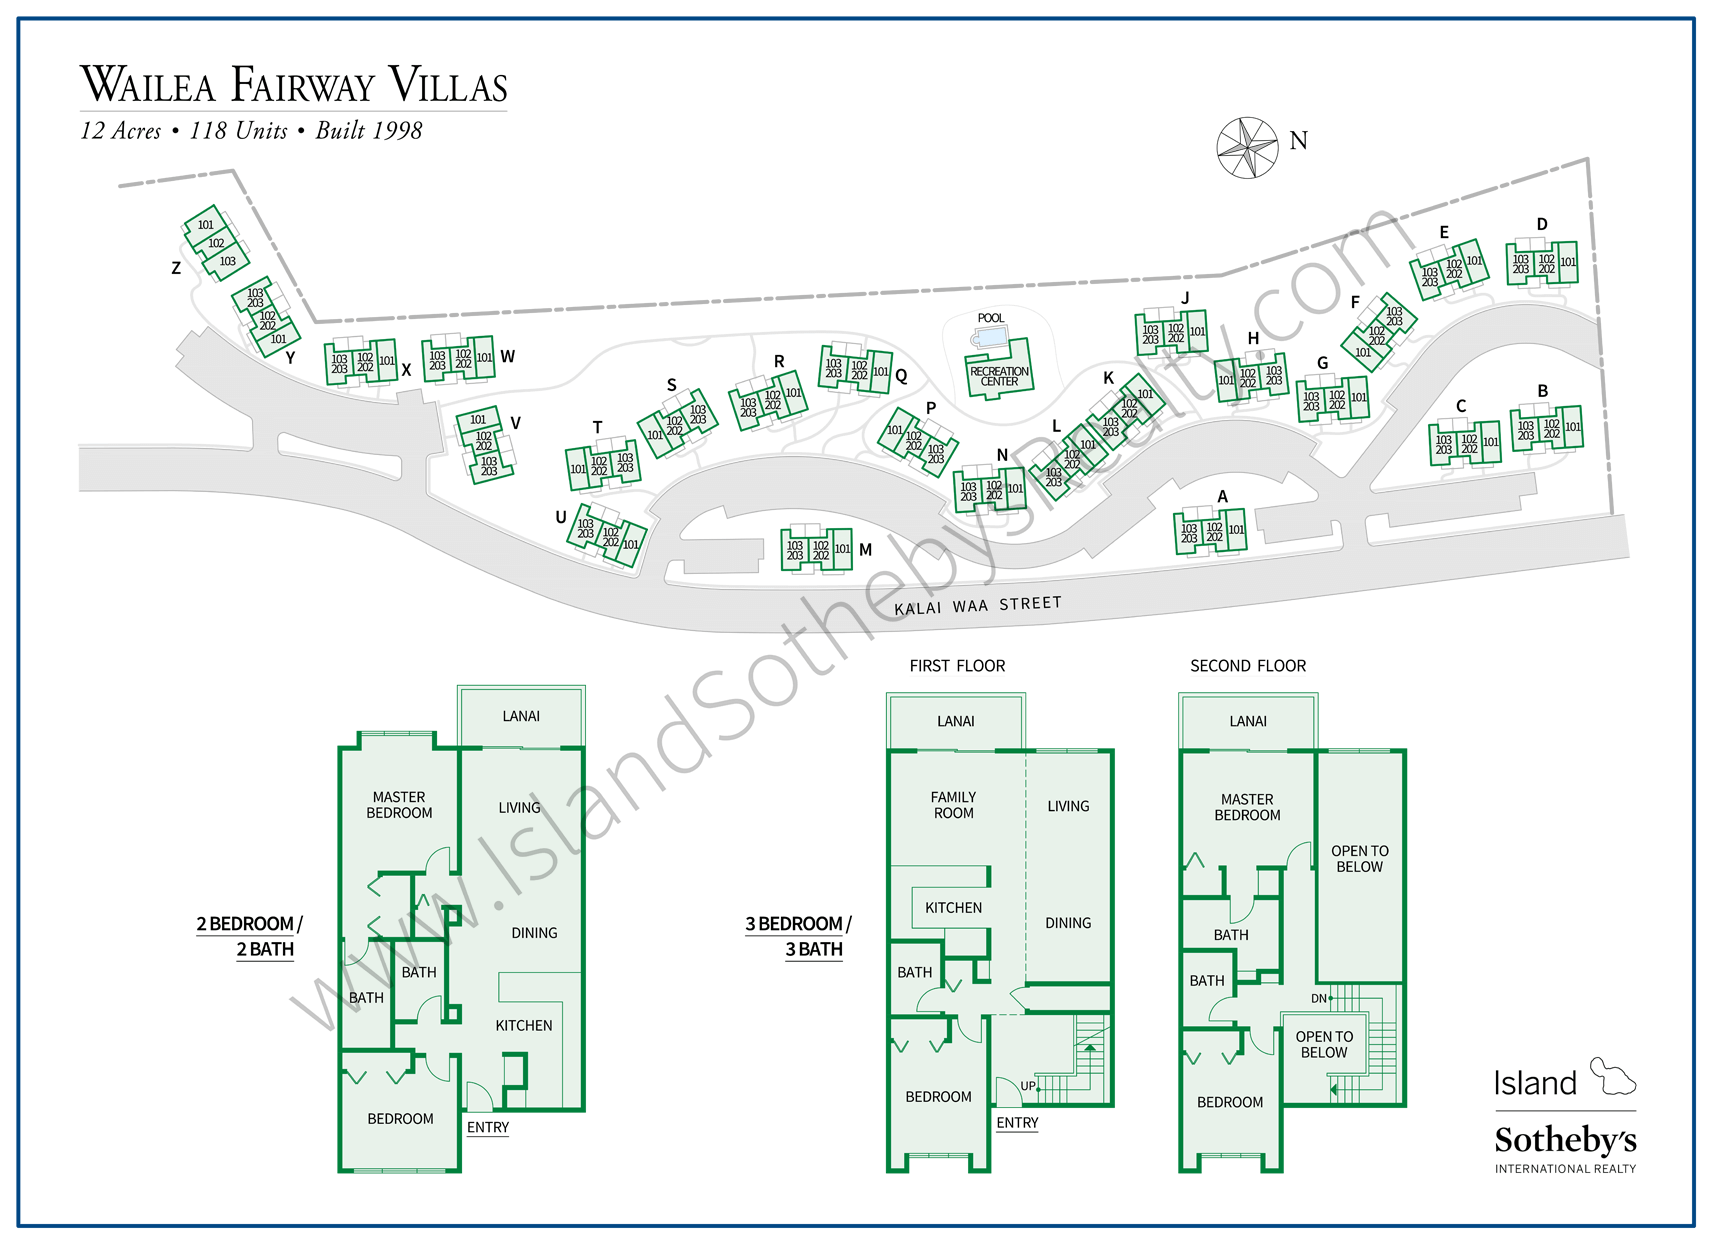 Map of Wailea Fairway Villas Maui